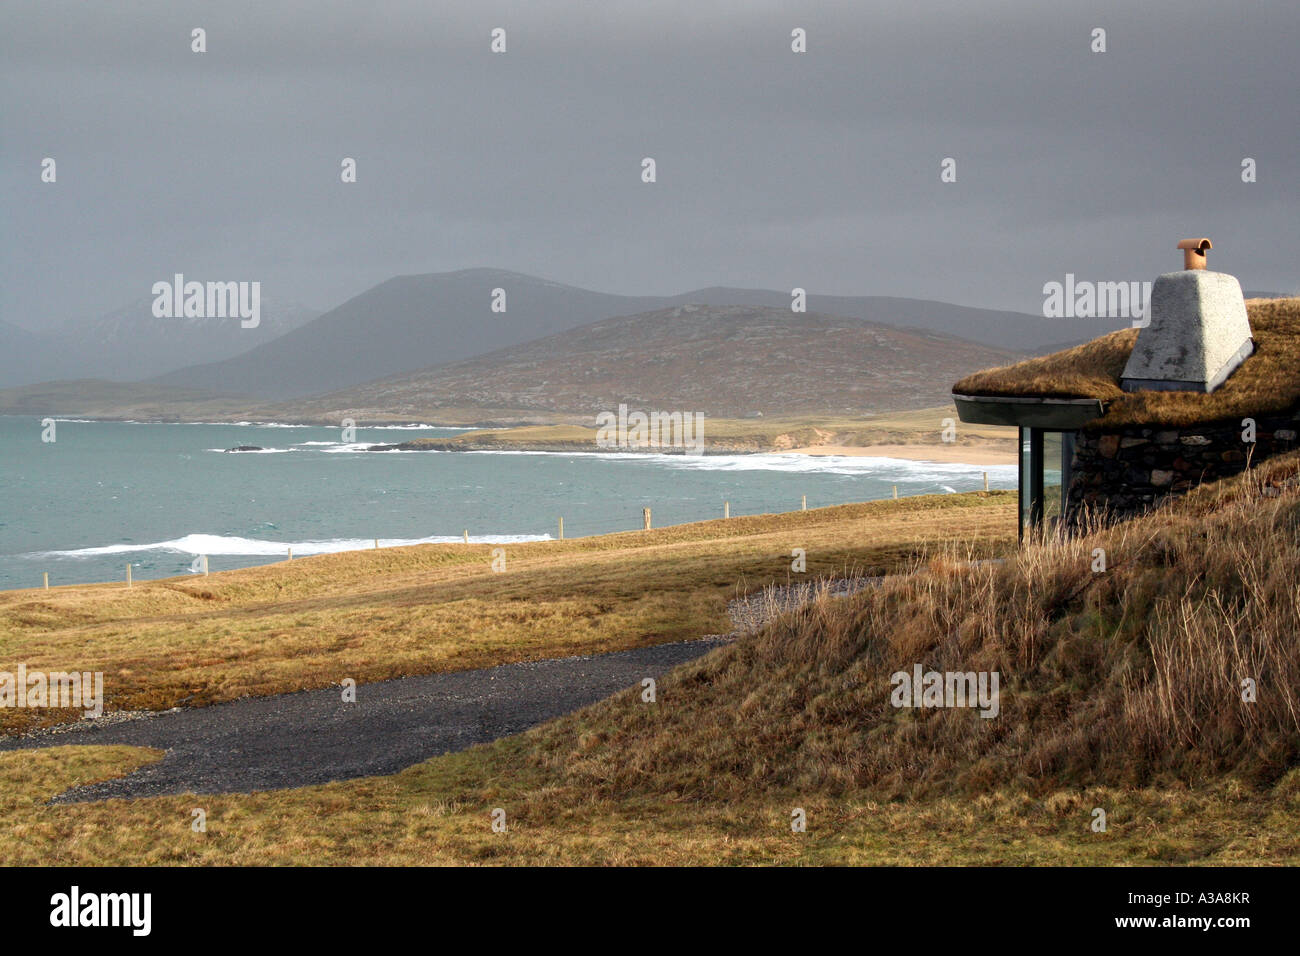 Blue Reef Cottages and Scarista Beach, Scarista, Isle of Harris, Outer Hebrides in Scotland - Stock Image